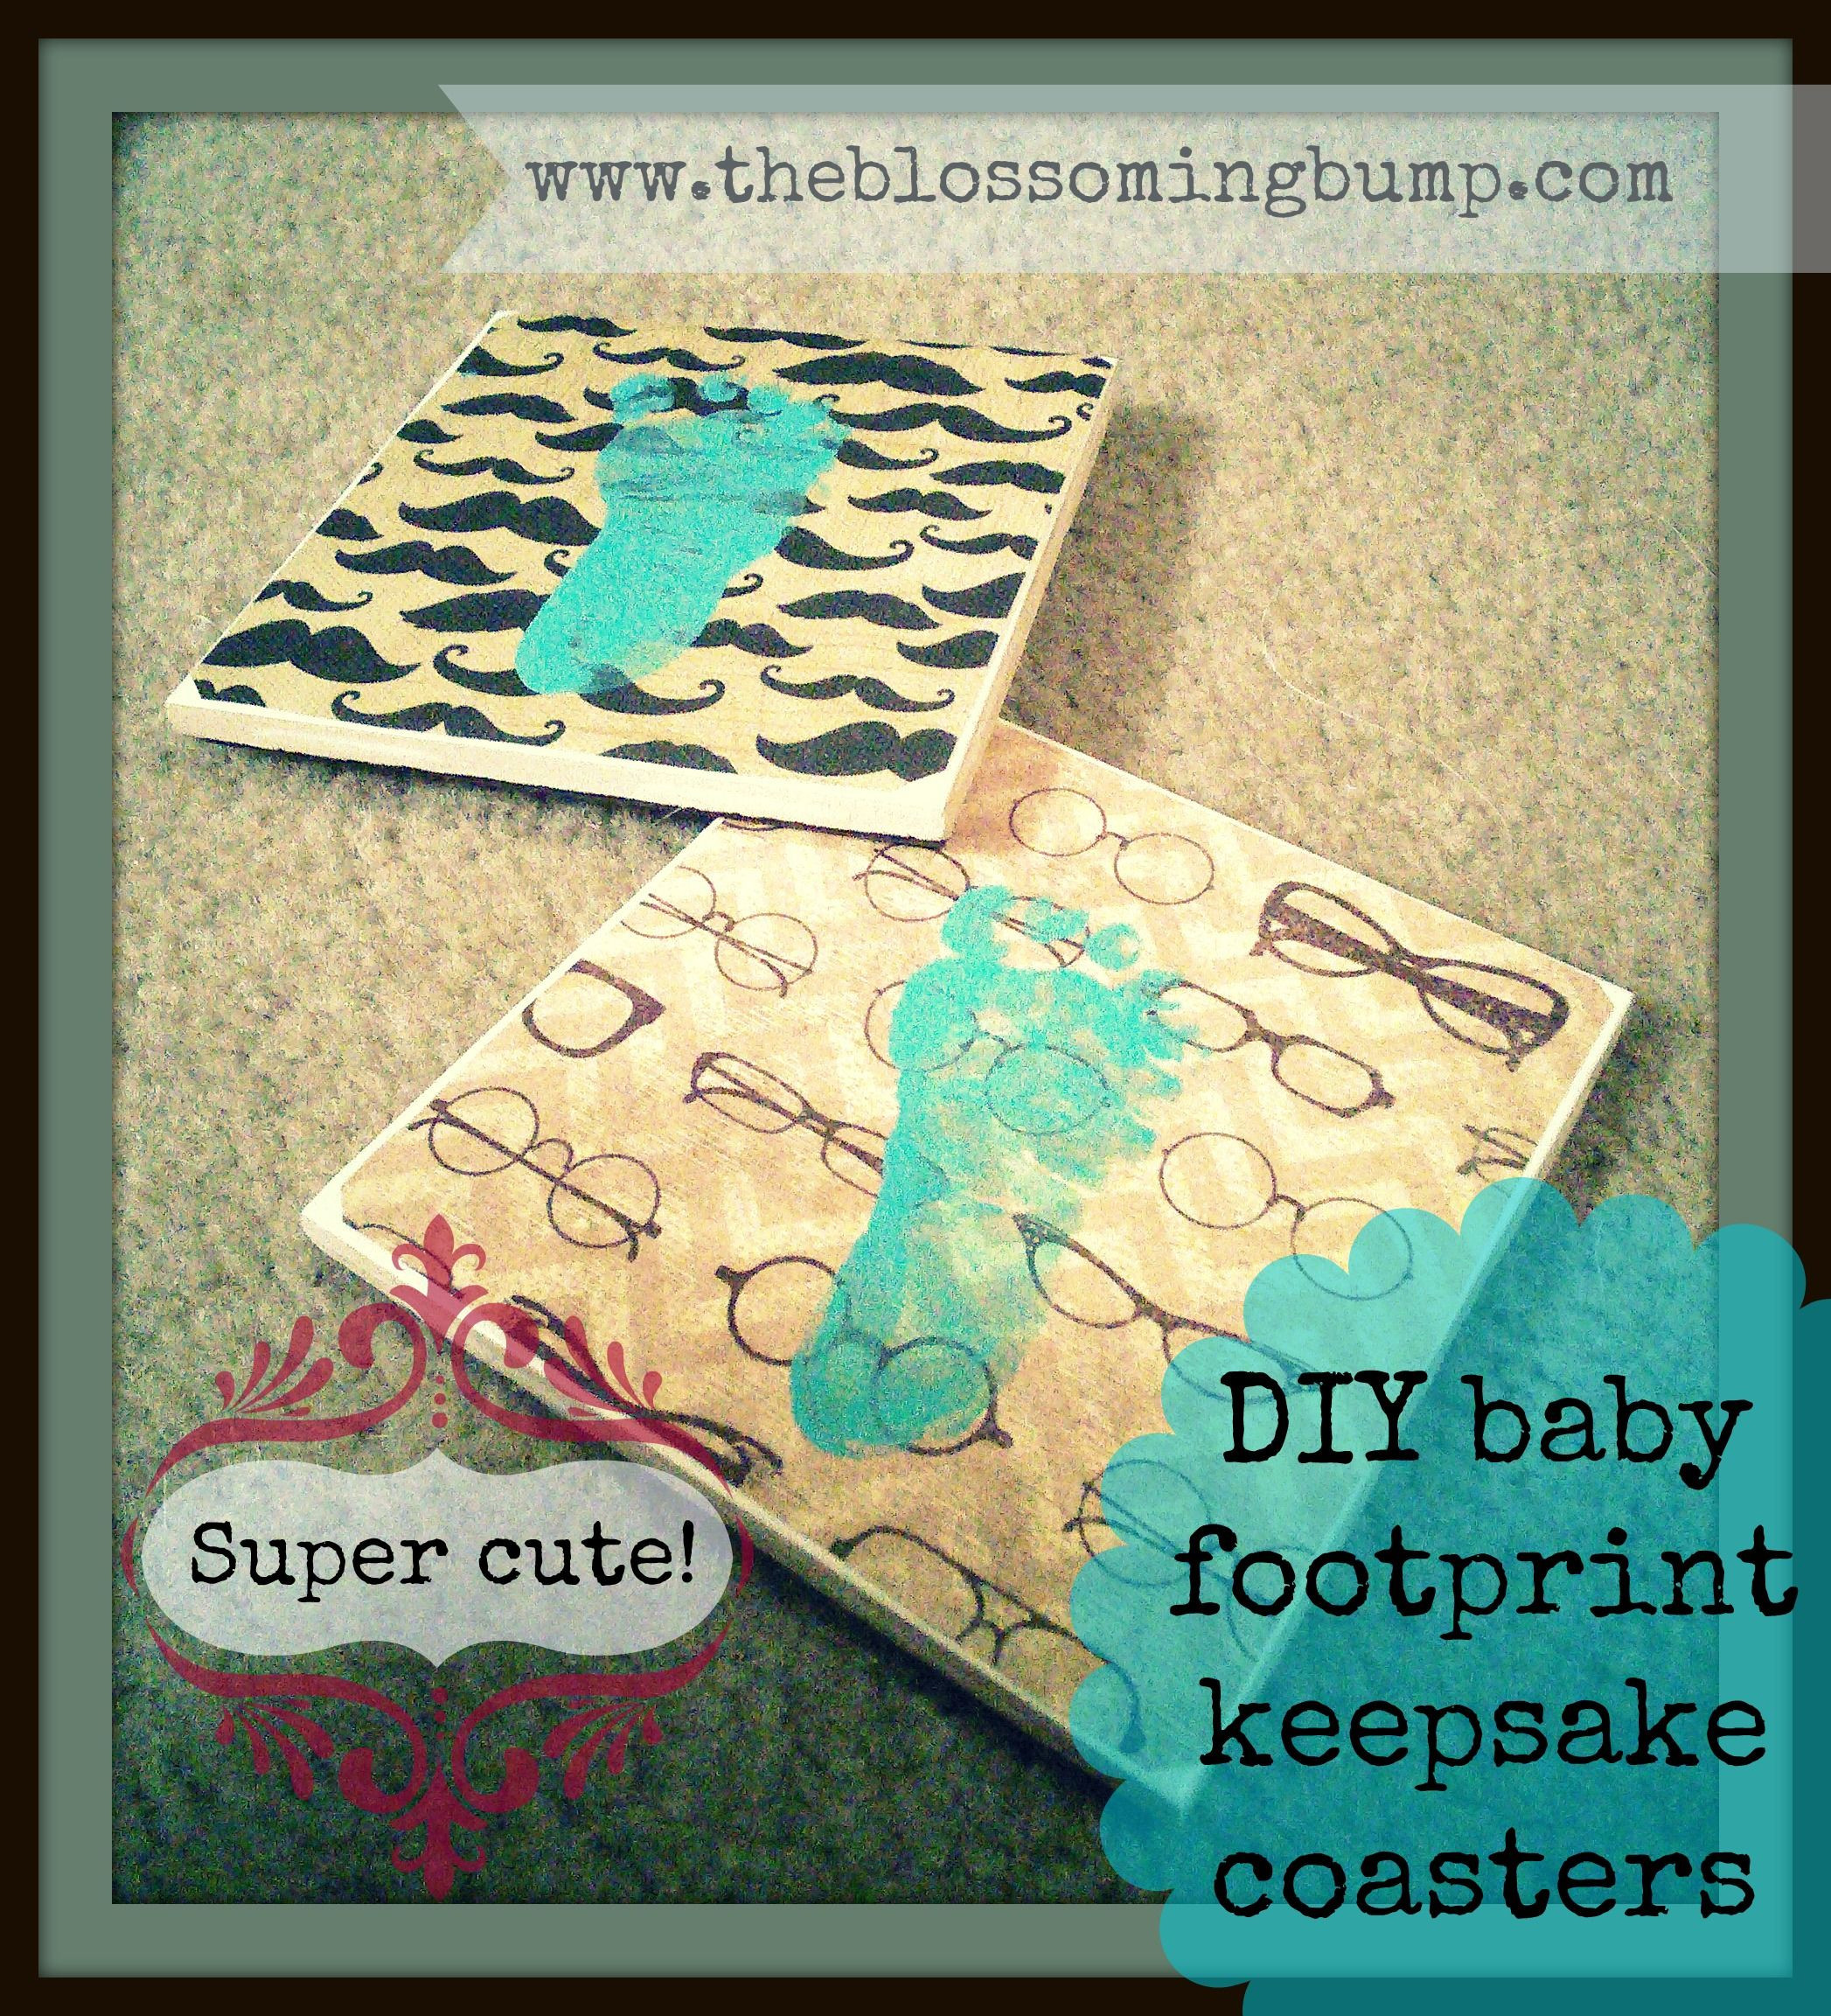 Best ideas about DIY Baby Footprint . Save or Pin Super cute DIY baby footprint keepsake coasters and other Now.